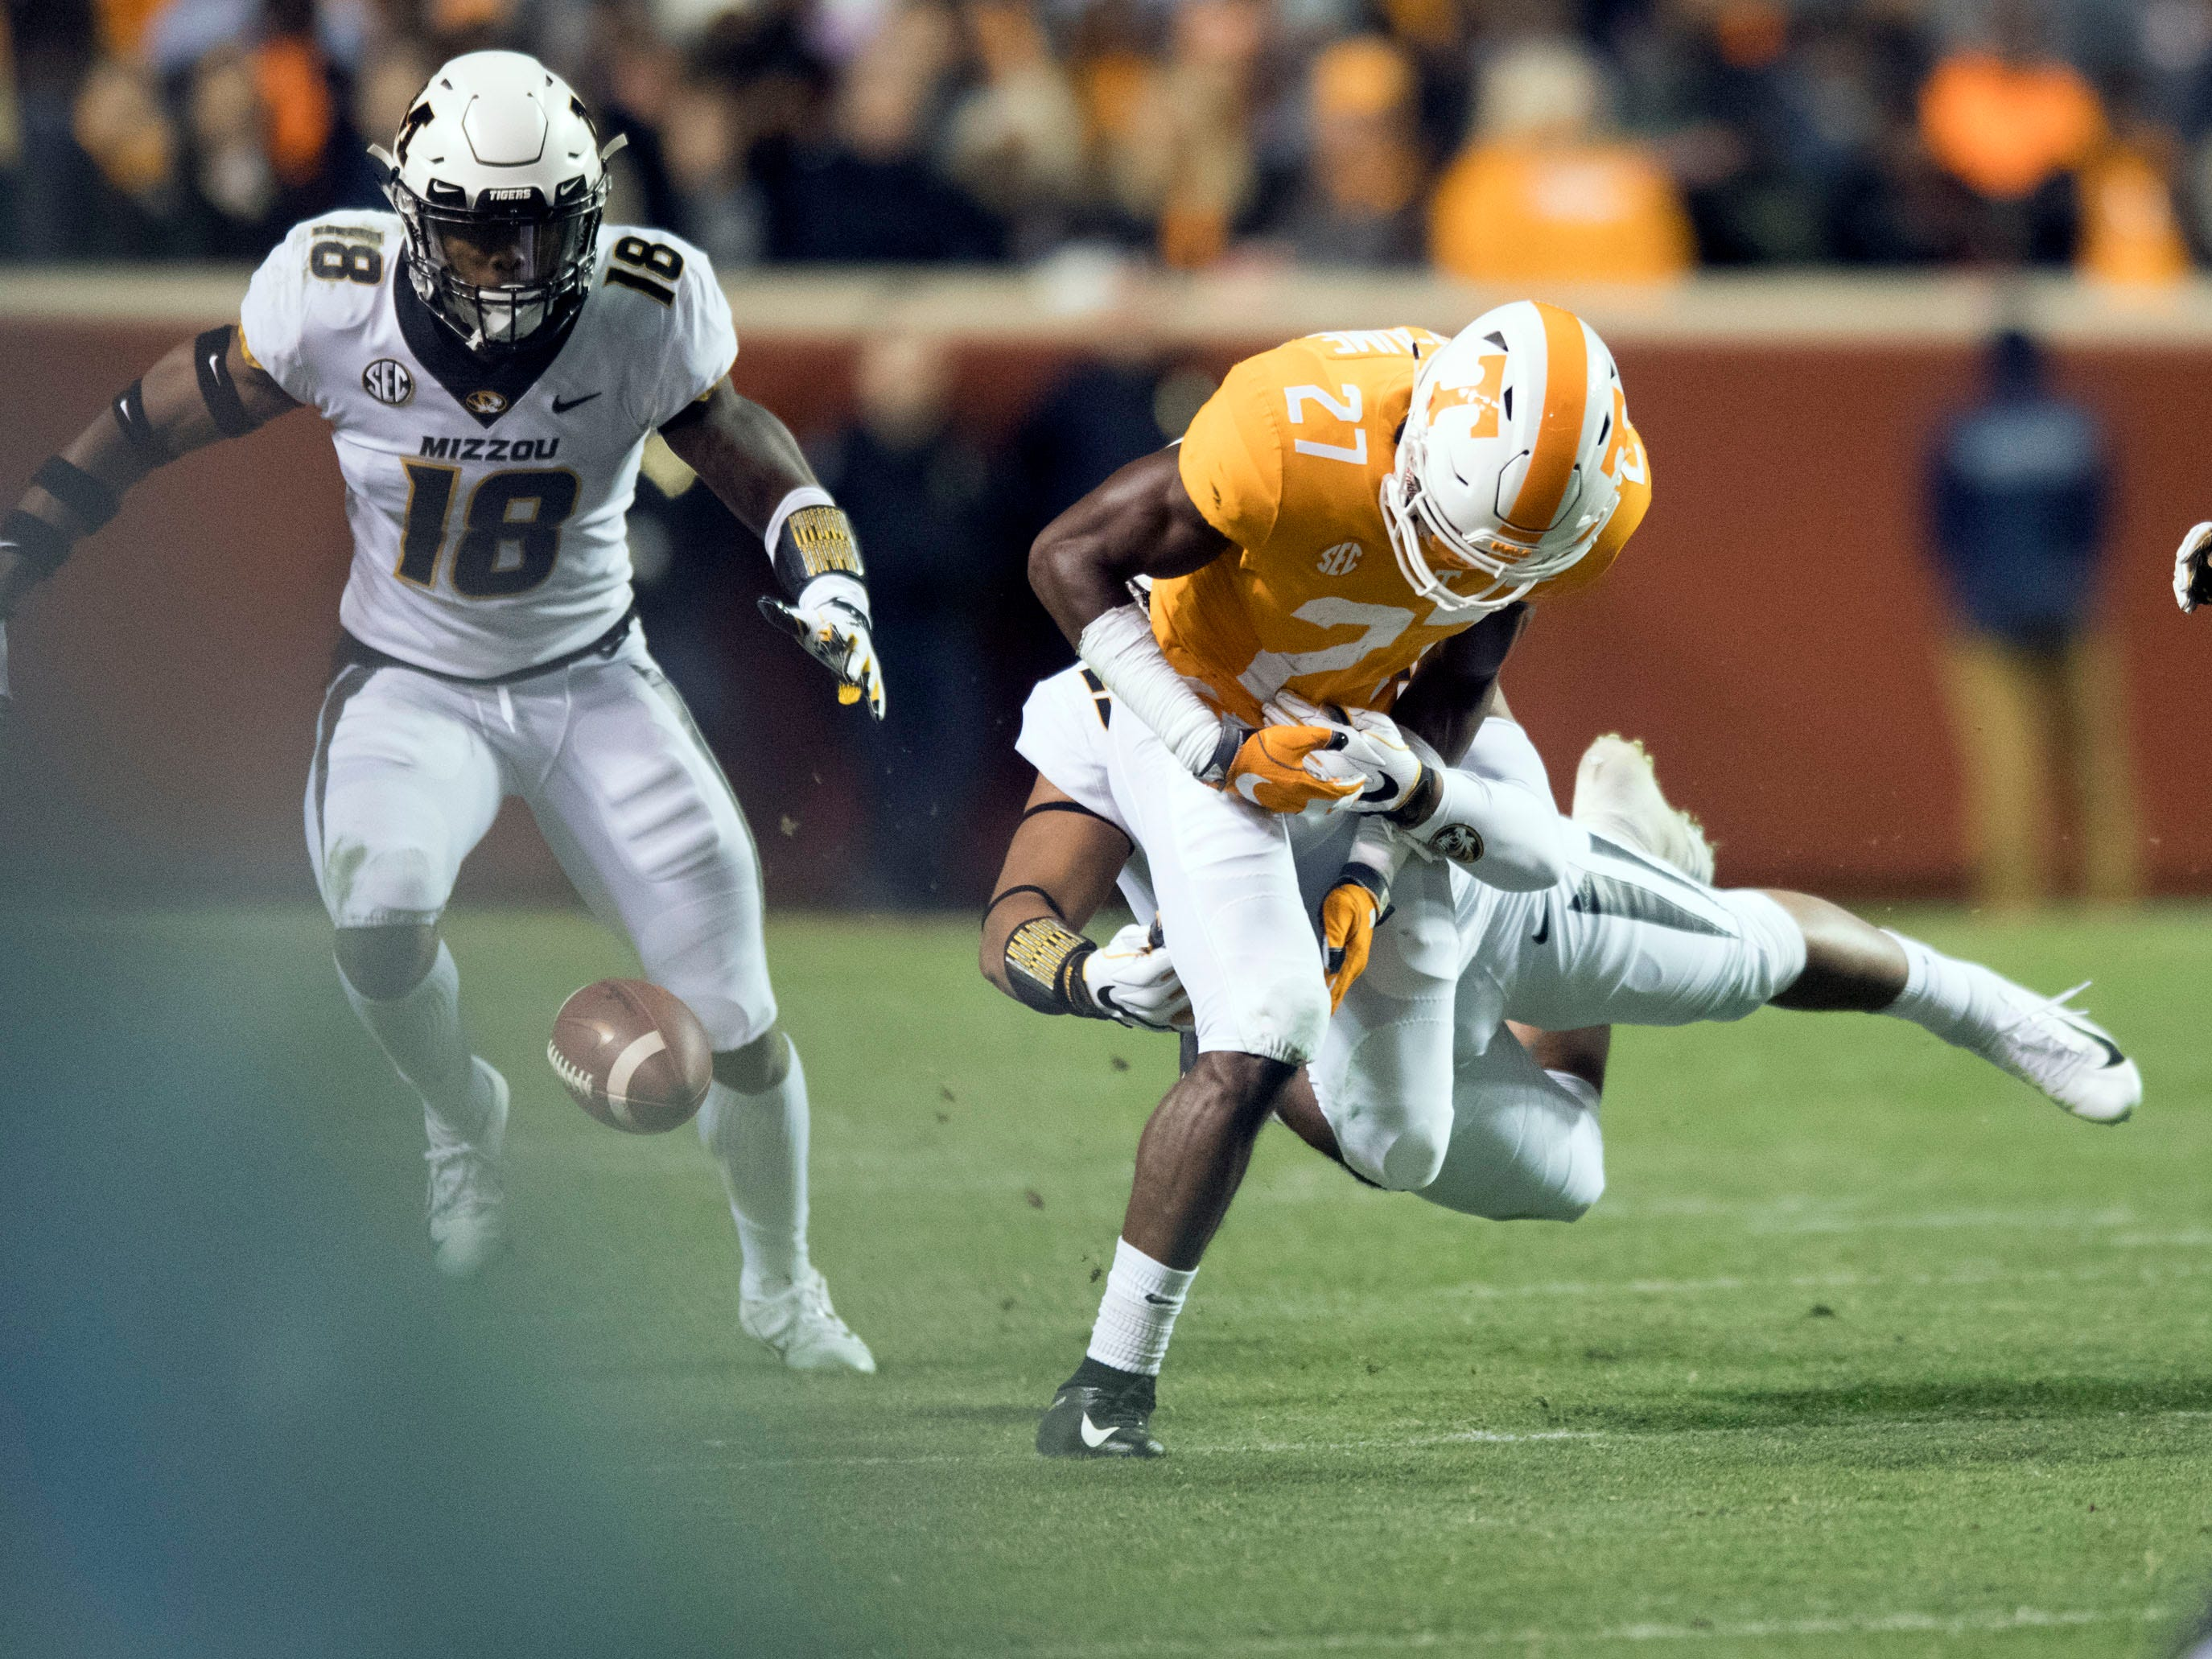 Tennessee defensive back Carlin Fils-aime (27) fumbles the ball during the game against Missouri on Saturday, November 17, 2018.